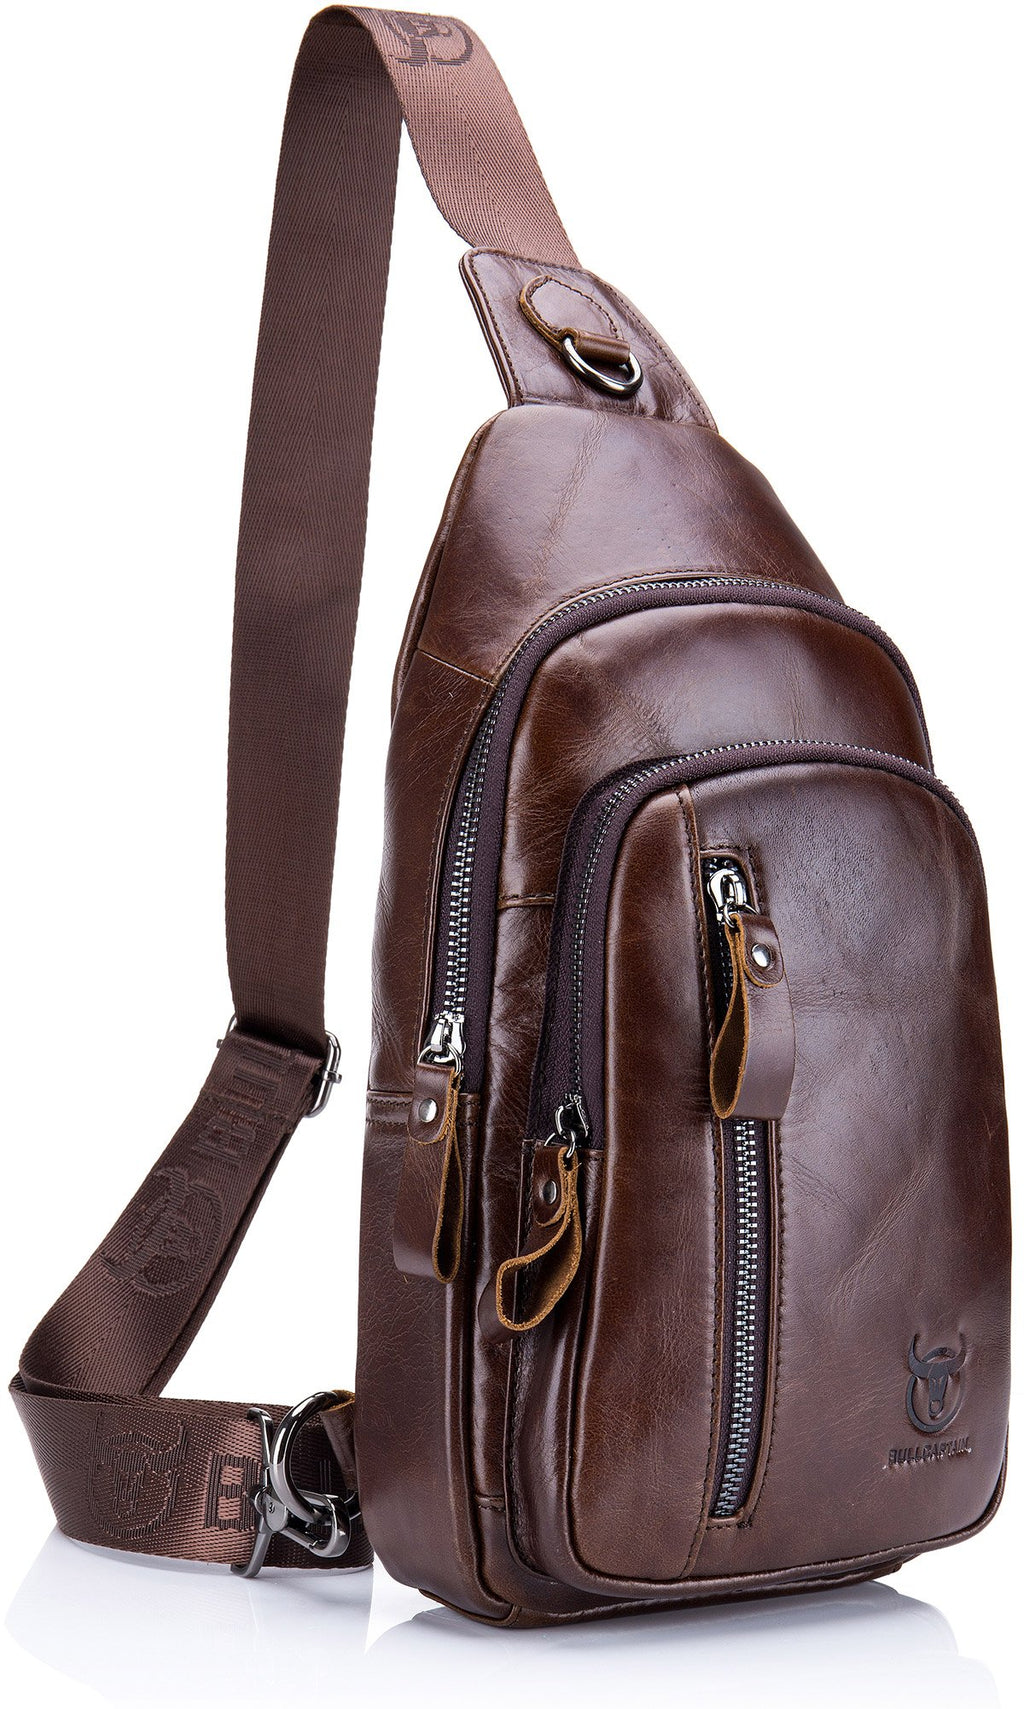 BULLCAPTAIN LEATHER SLING BAG - 100